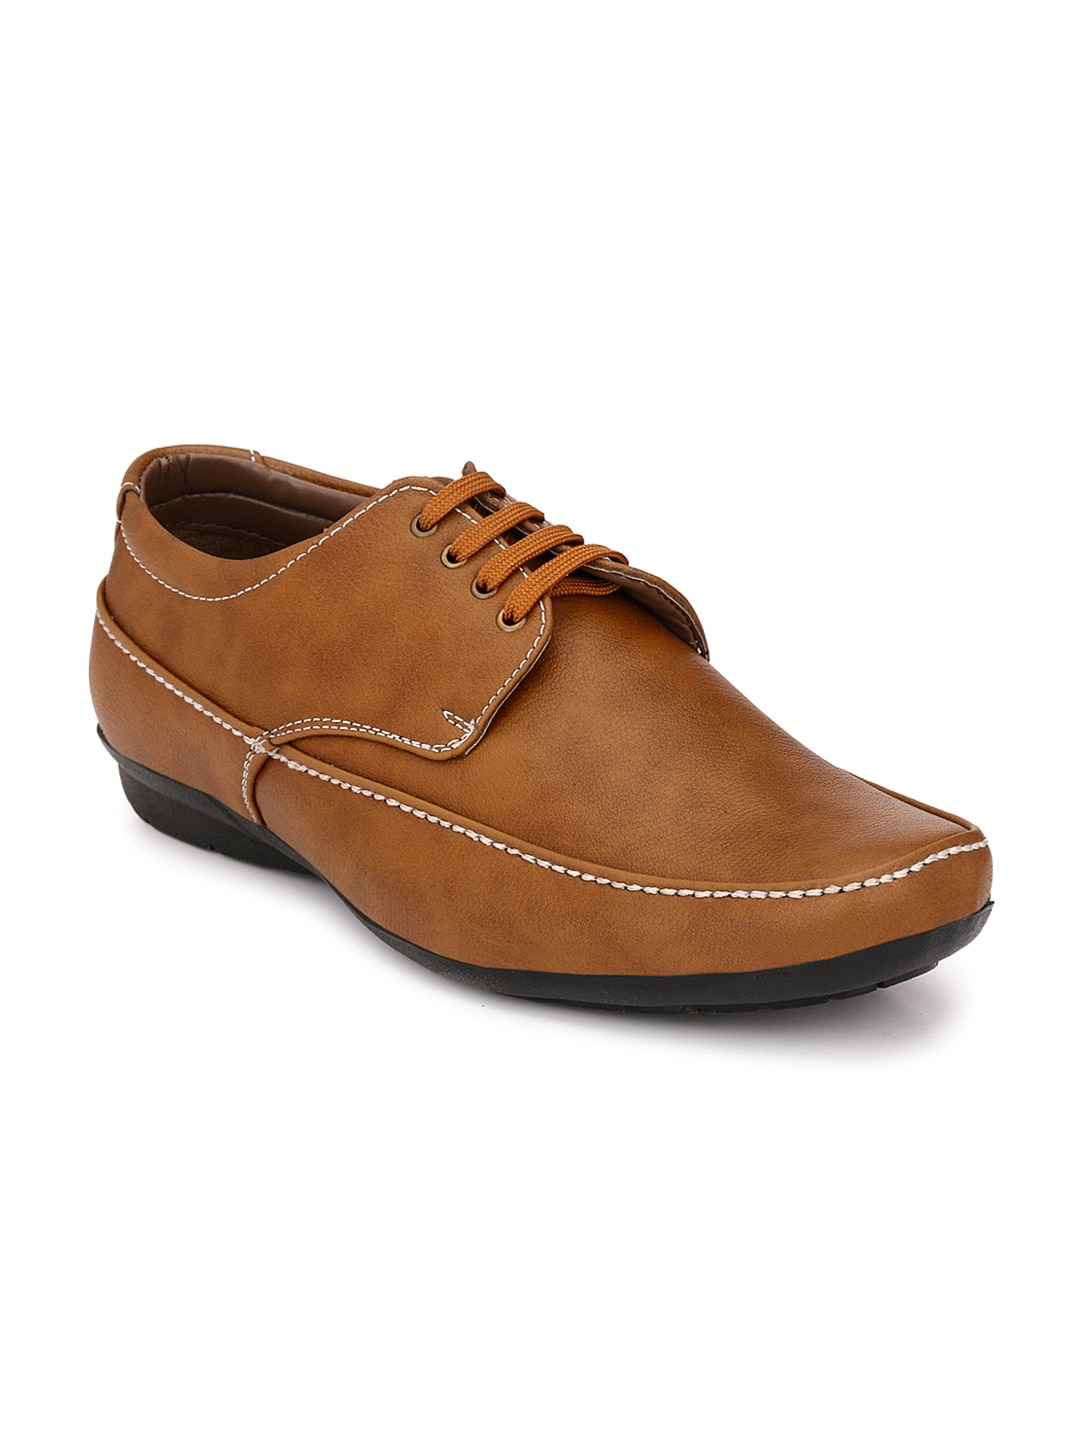 John Karsun Men Tan Brown Casual Shoes image